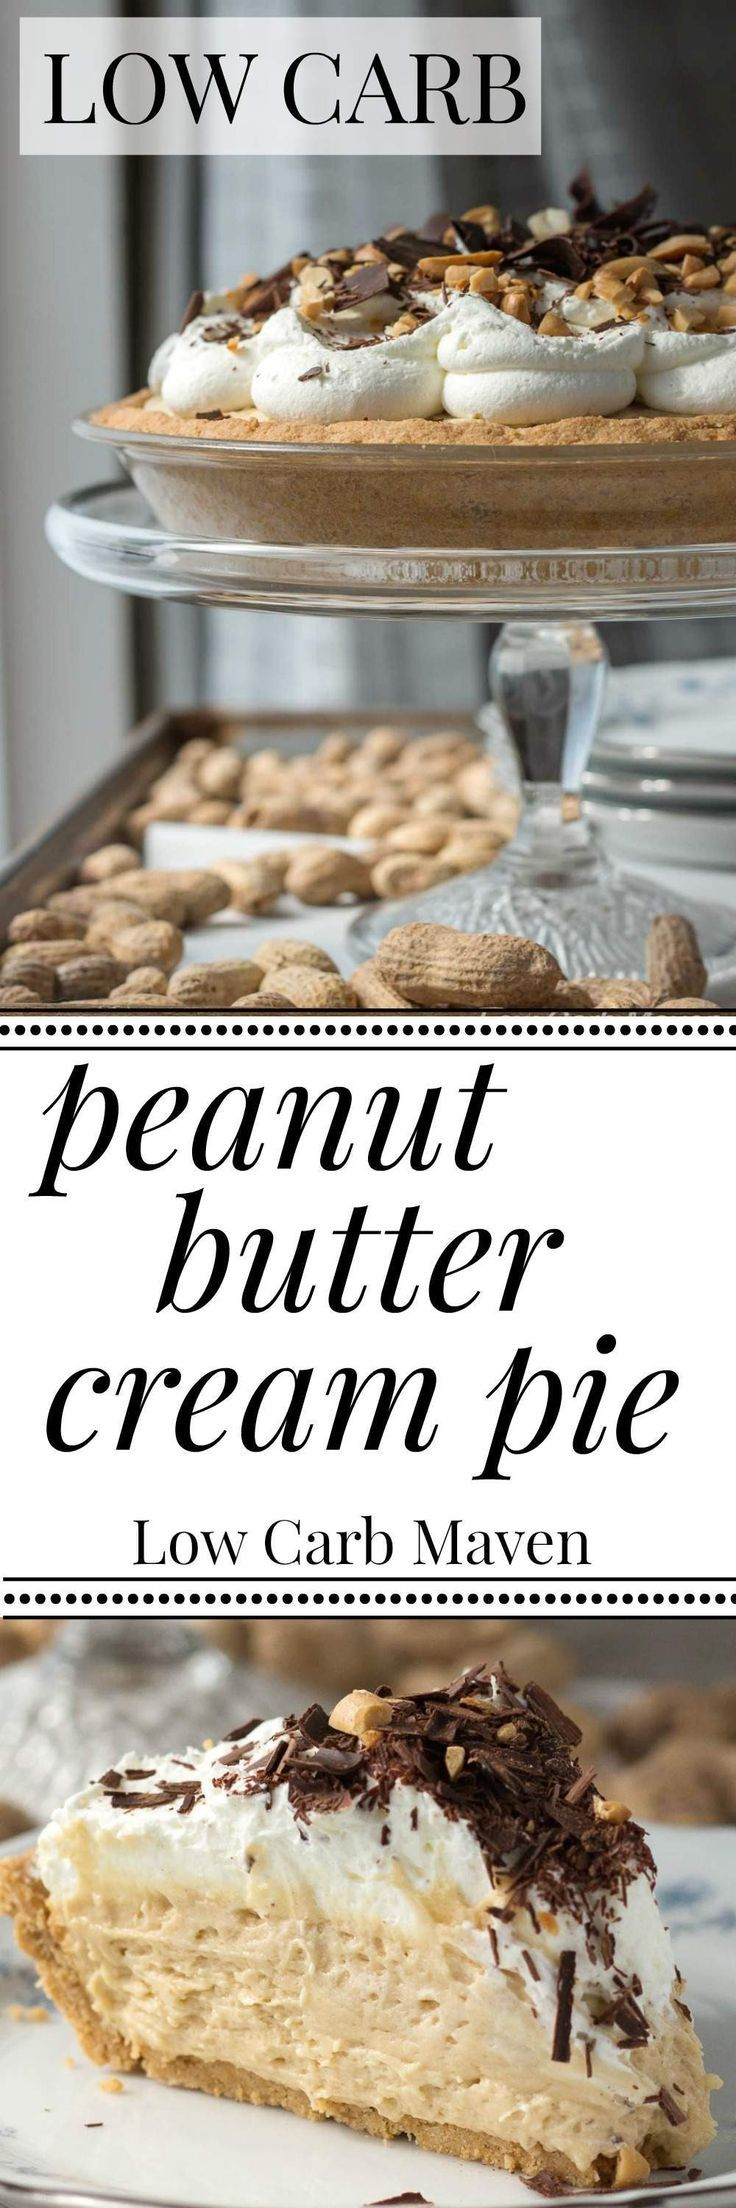 Low carb peanut butter cream pie is sugar free and keto